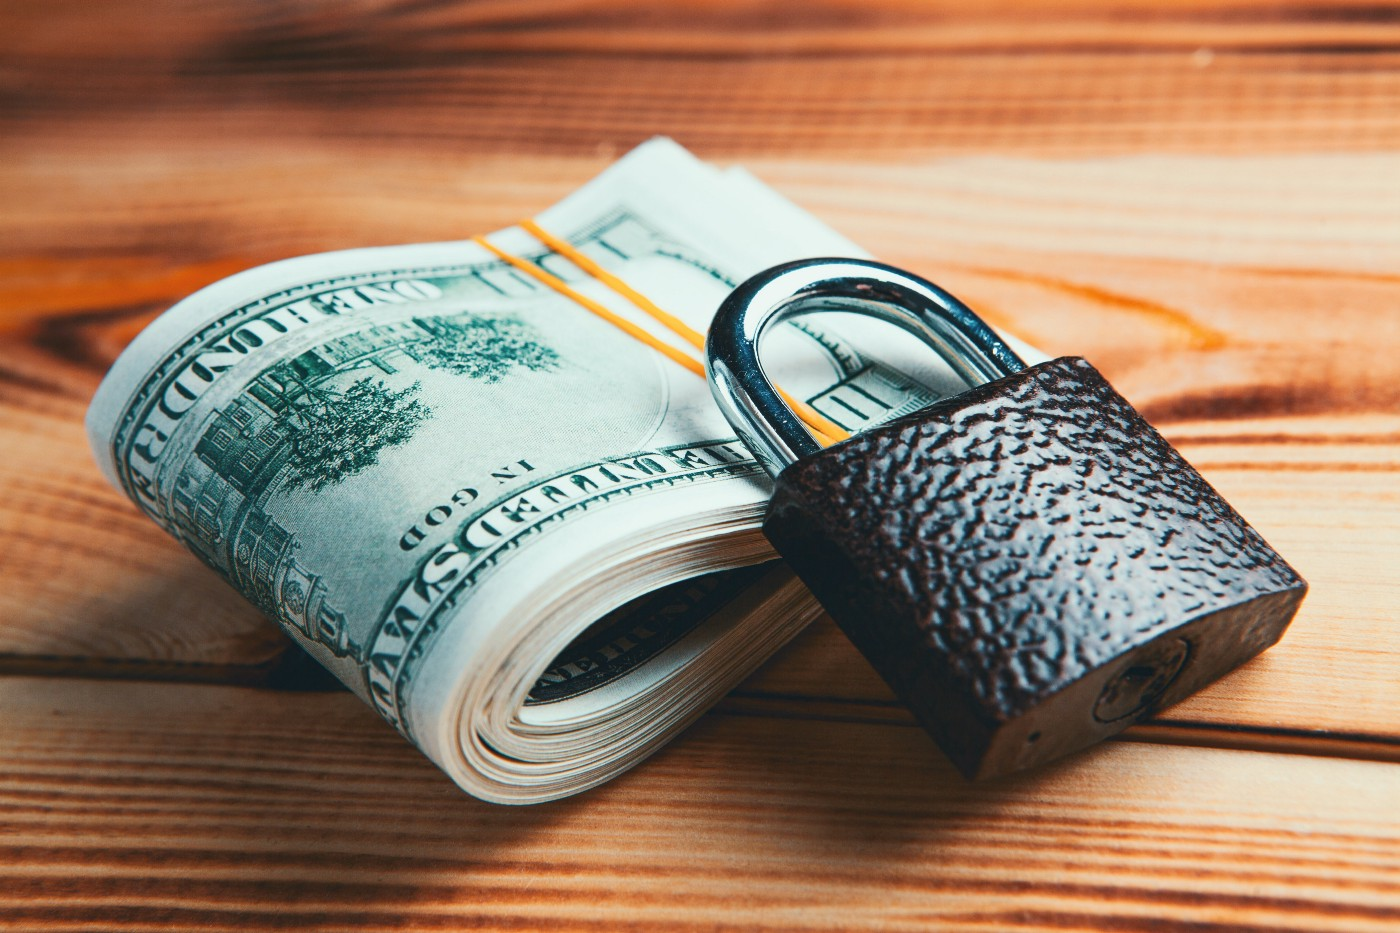 There is a large billfold of 100 dollar bills with a small rubber band around it and a lock lying ontop of and against the money.